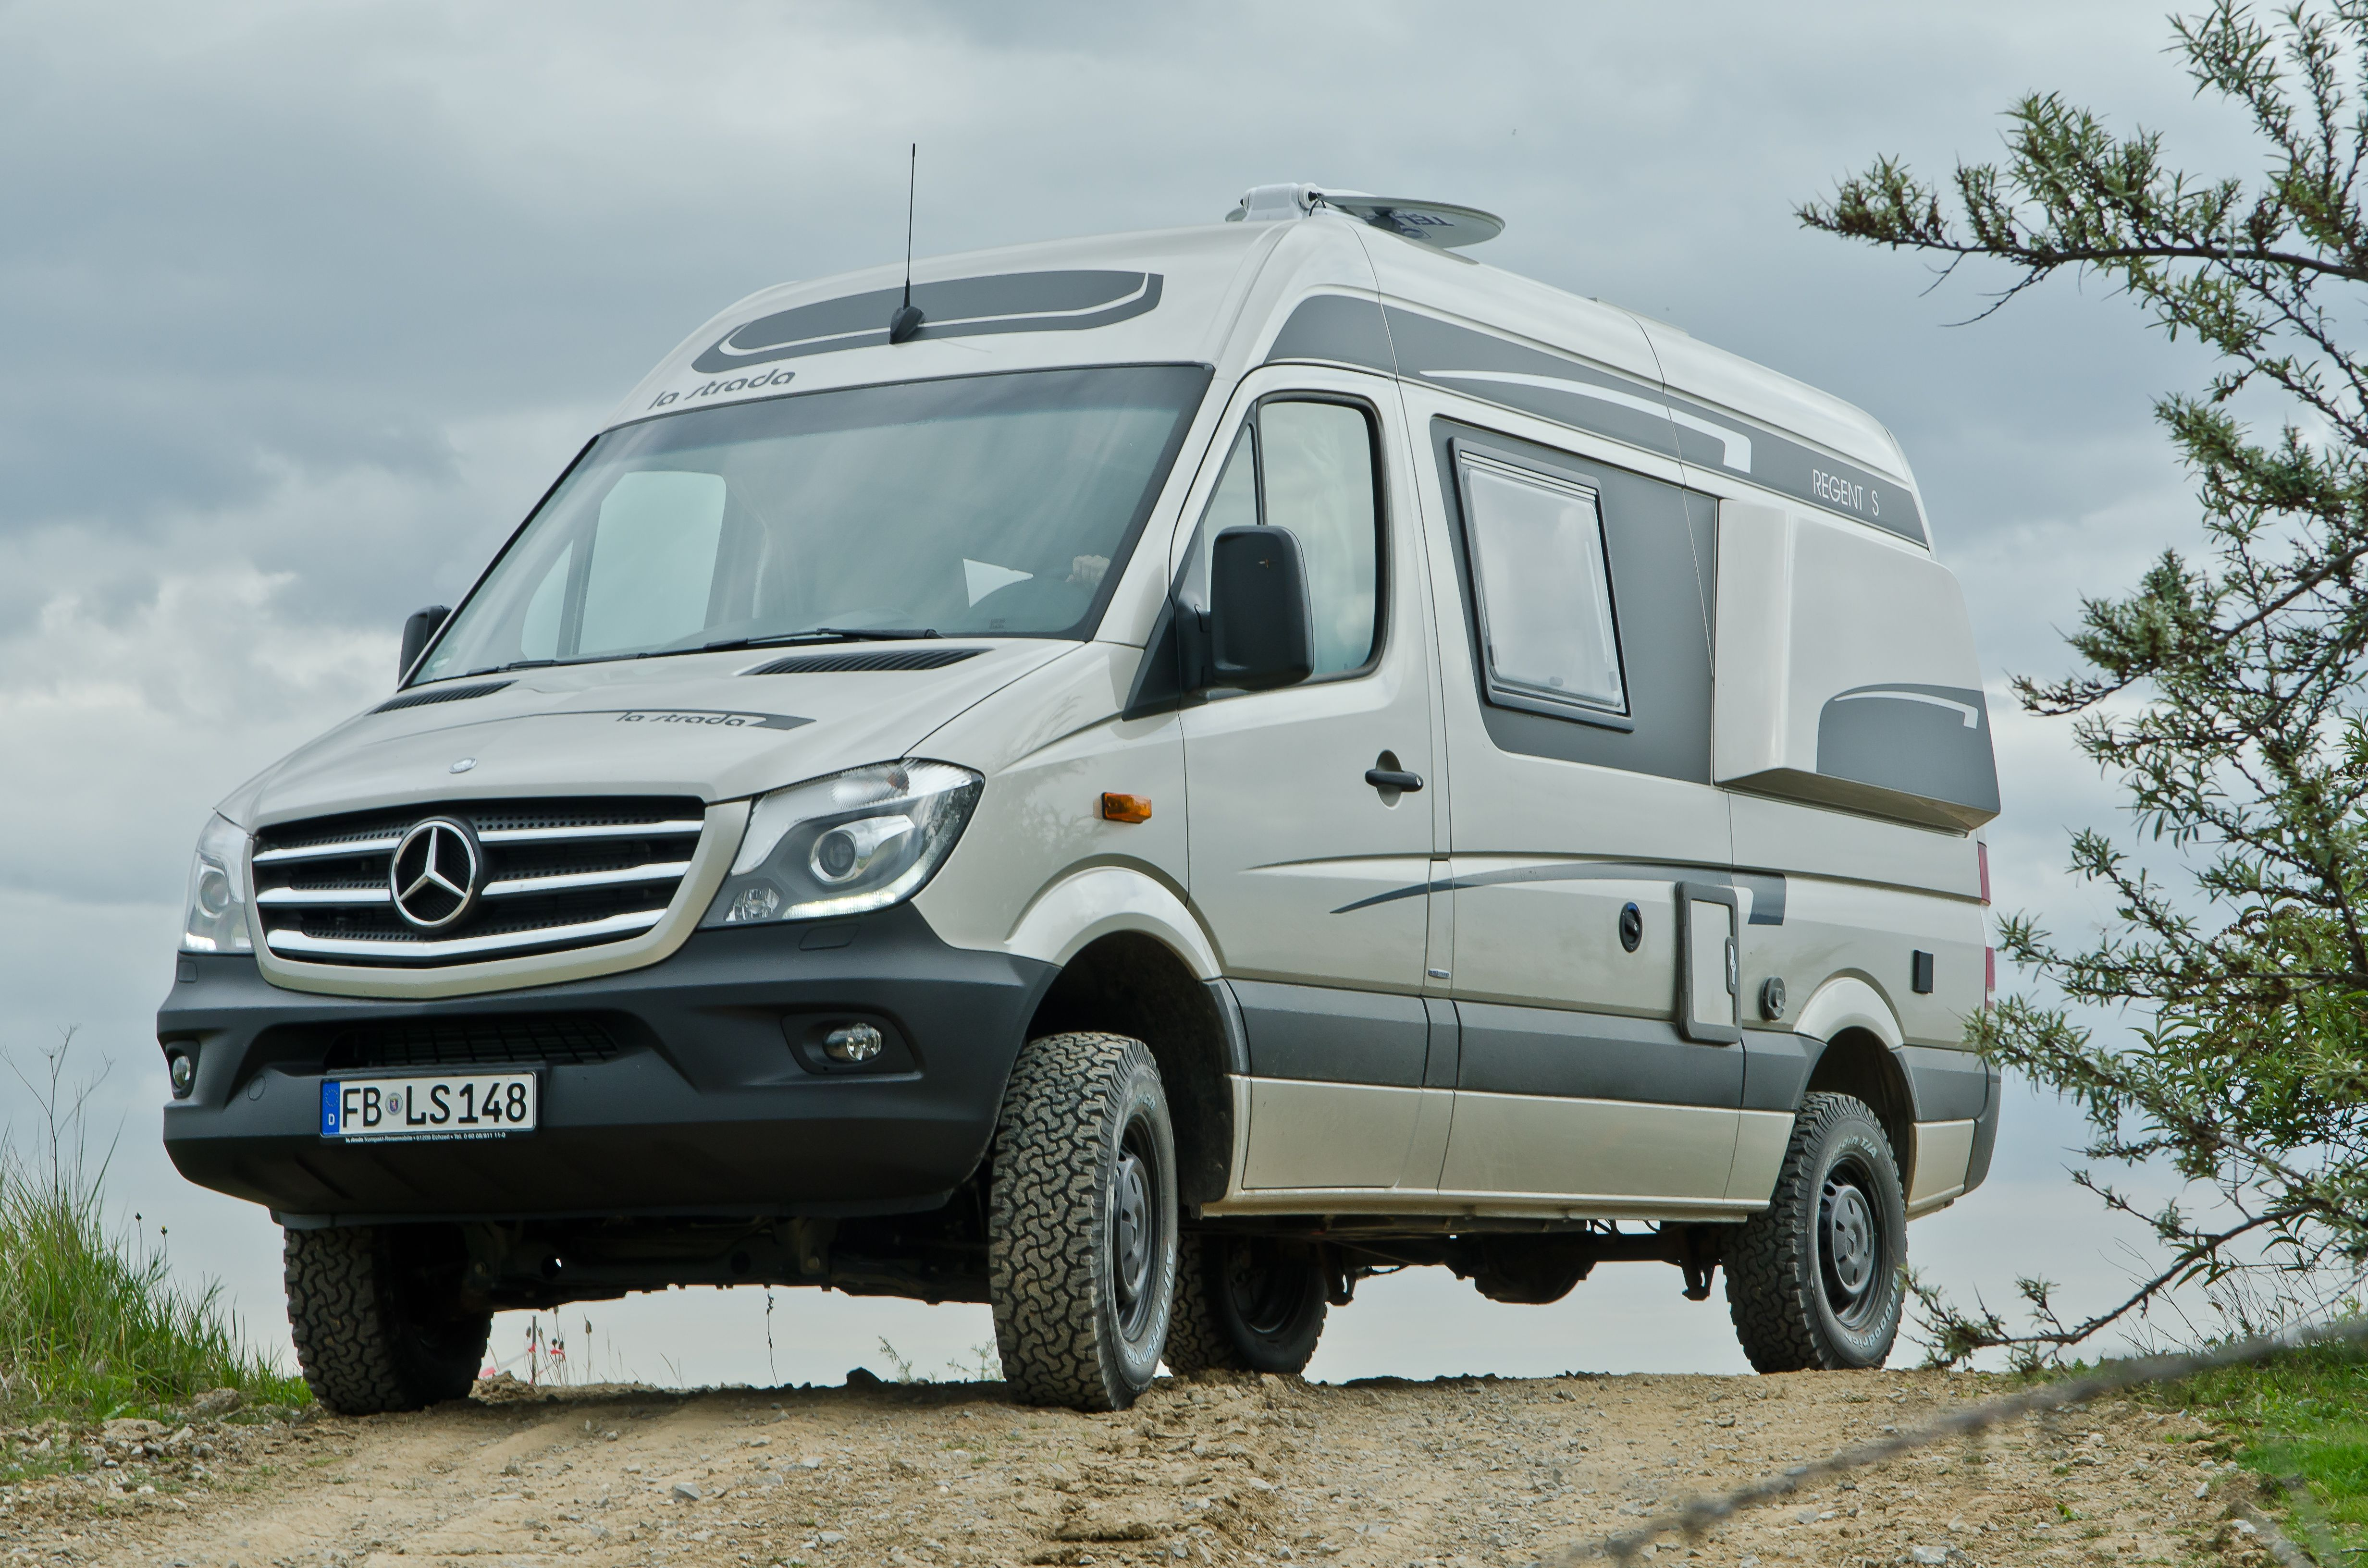 la strada regent s a 4x4 mercedes camper motorhome full time sprinter pinterest. Black Bedroom Furniture Sets. Home Design Ideas